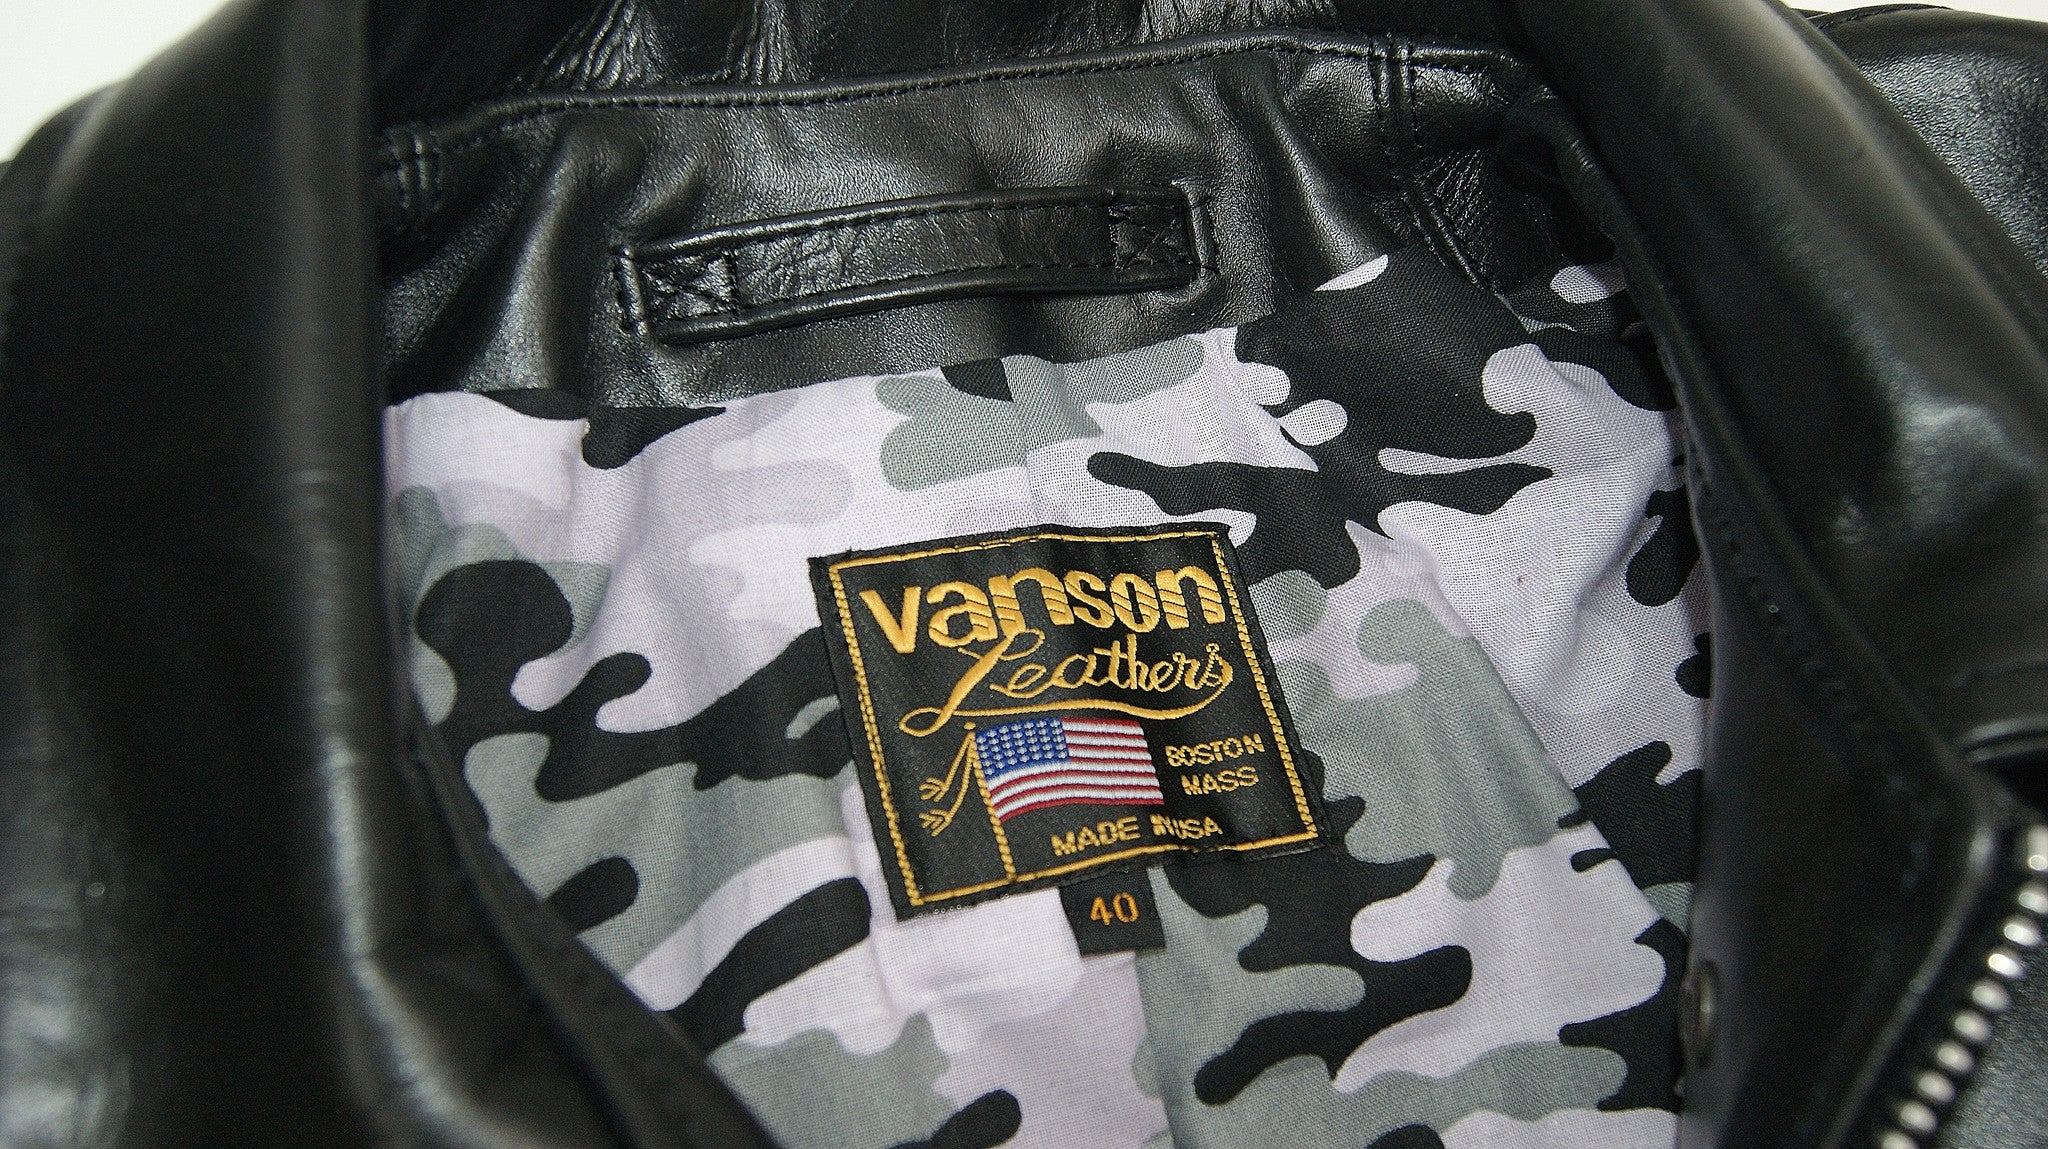 Vanson Panther, size 40, Camo Lining, Z150 Cowhide